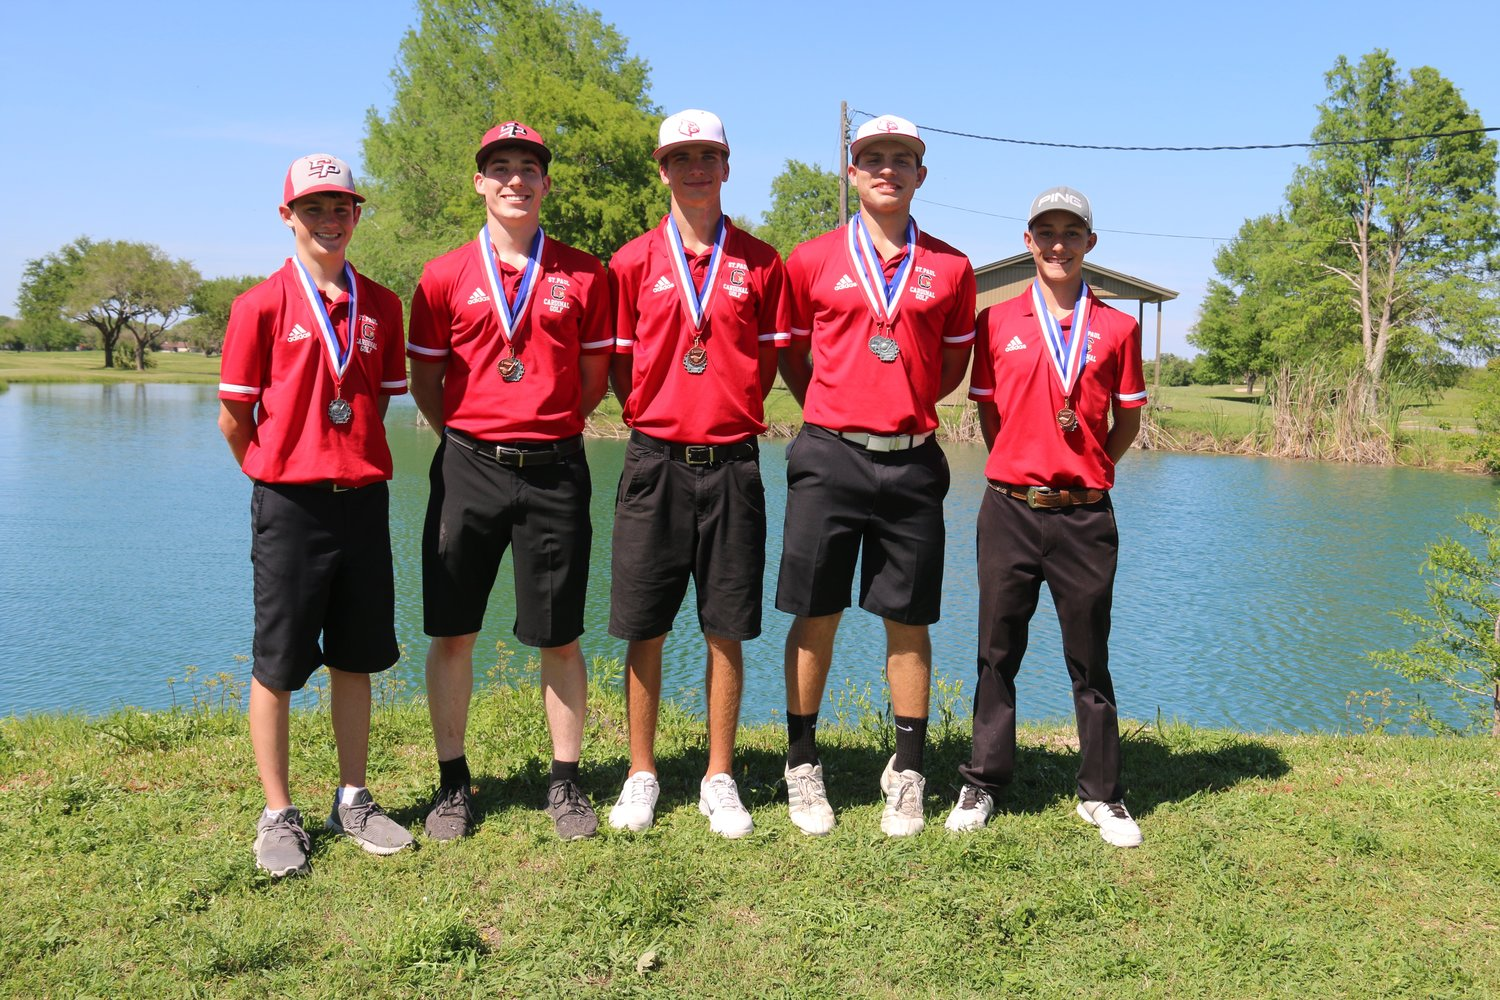 On the boys team are (from left) Braden Clampit, Carson Reese, Walker Jackson, Cole Brown and Cody Hollenbach.